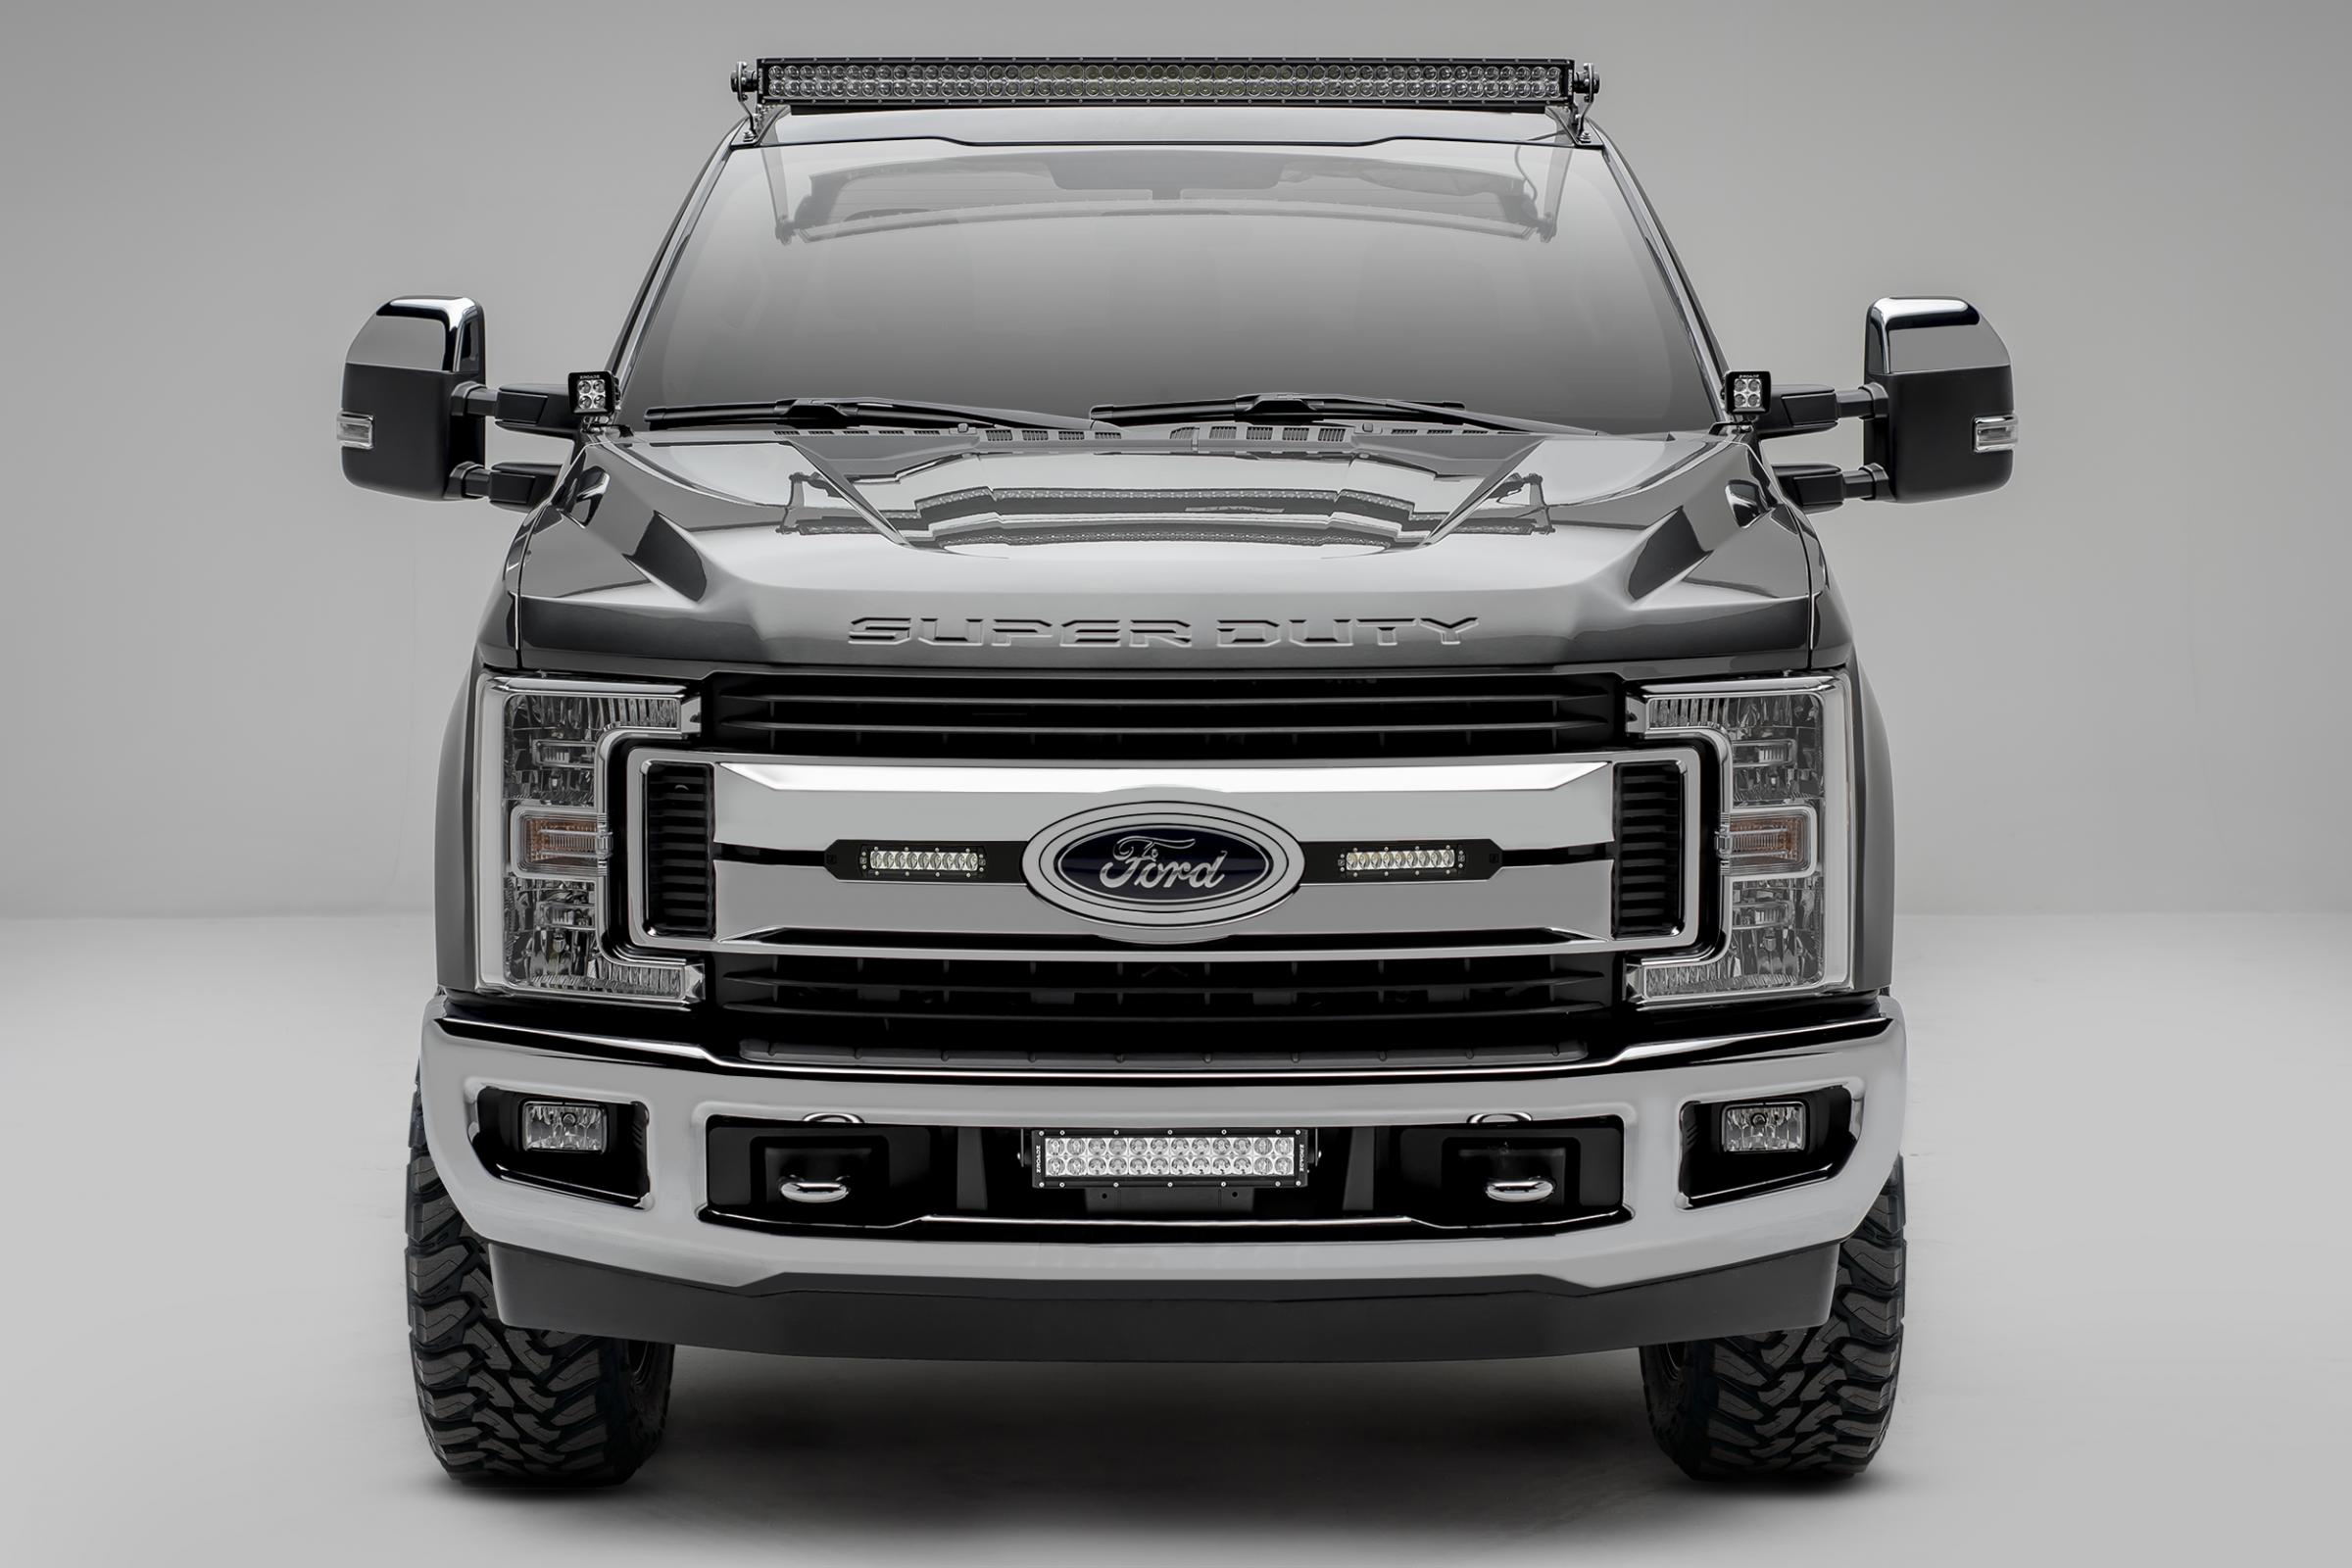 Oem grille led light bar mounts black 2017 ford f 250350 includes oem grille led light bar mounts black 2017 ford f 250350 includes two mozeypictures